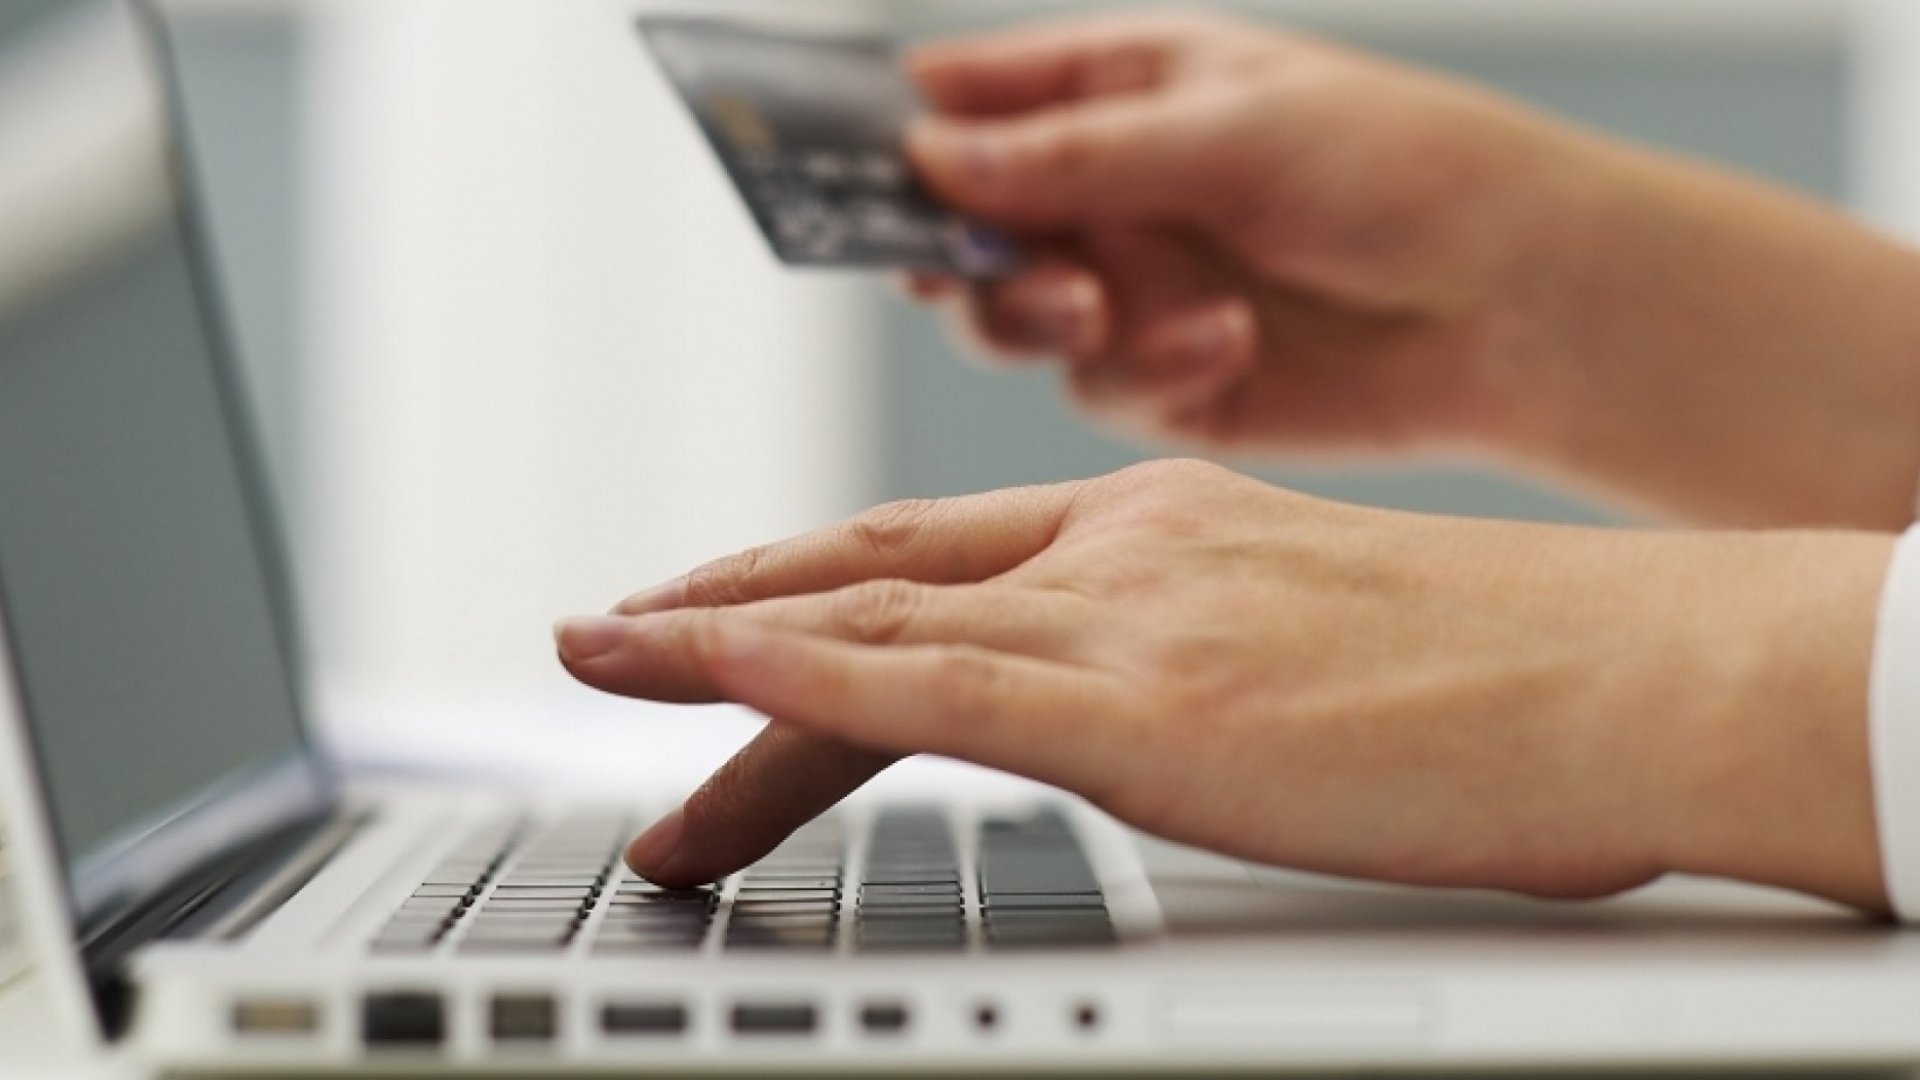 Beyond Amazon: 5 Niche Ecommerce Sites Driving Innovation In Online Shopping